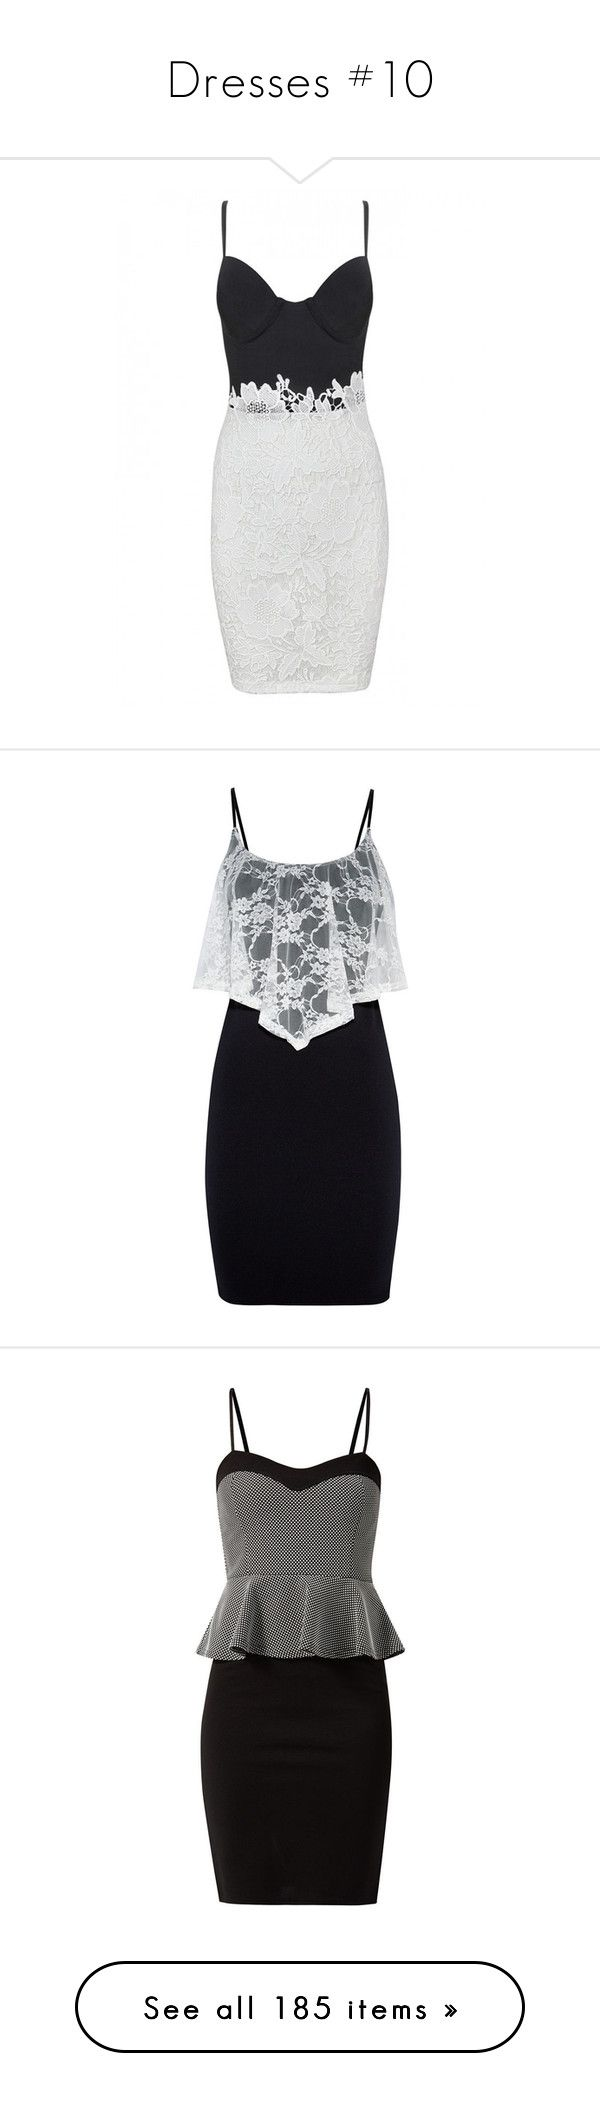 """""""Dresses #10"""" by maymchale ❤ liked on Polyvore featuring dresses, vestidos, short dresses, lace dress, white lace cocktail dress, bodycon bandage dress, white dress, white mini dress, little black lace dress and mini dress"""